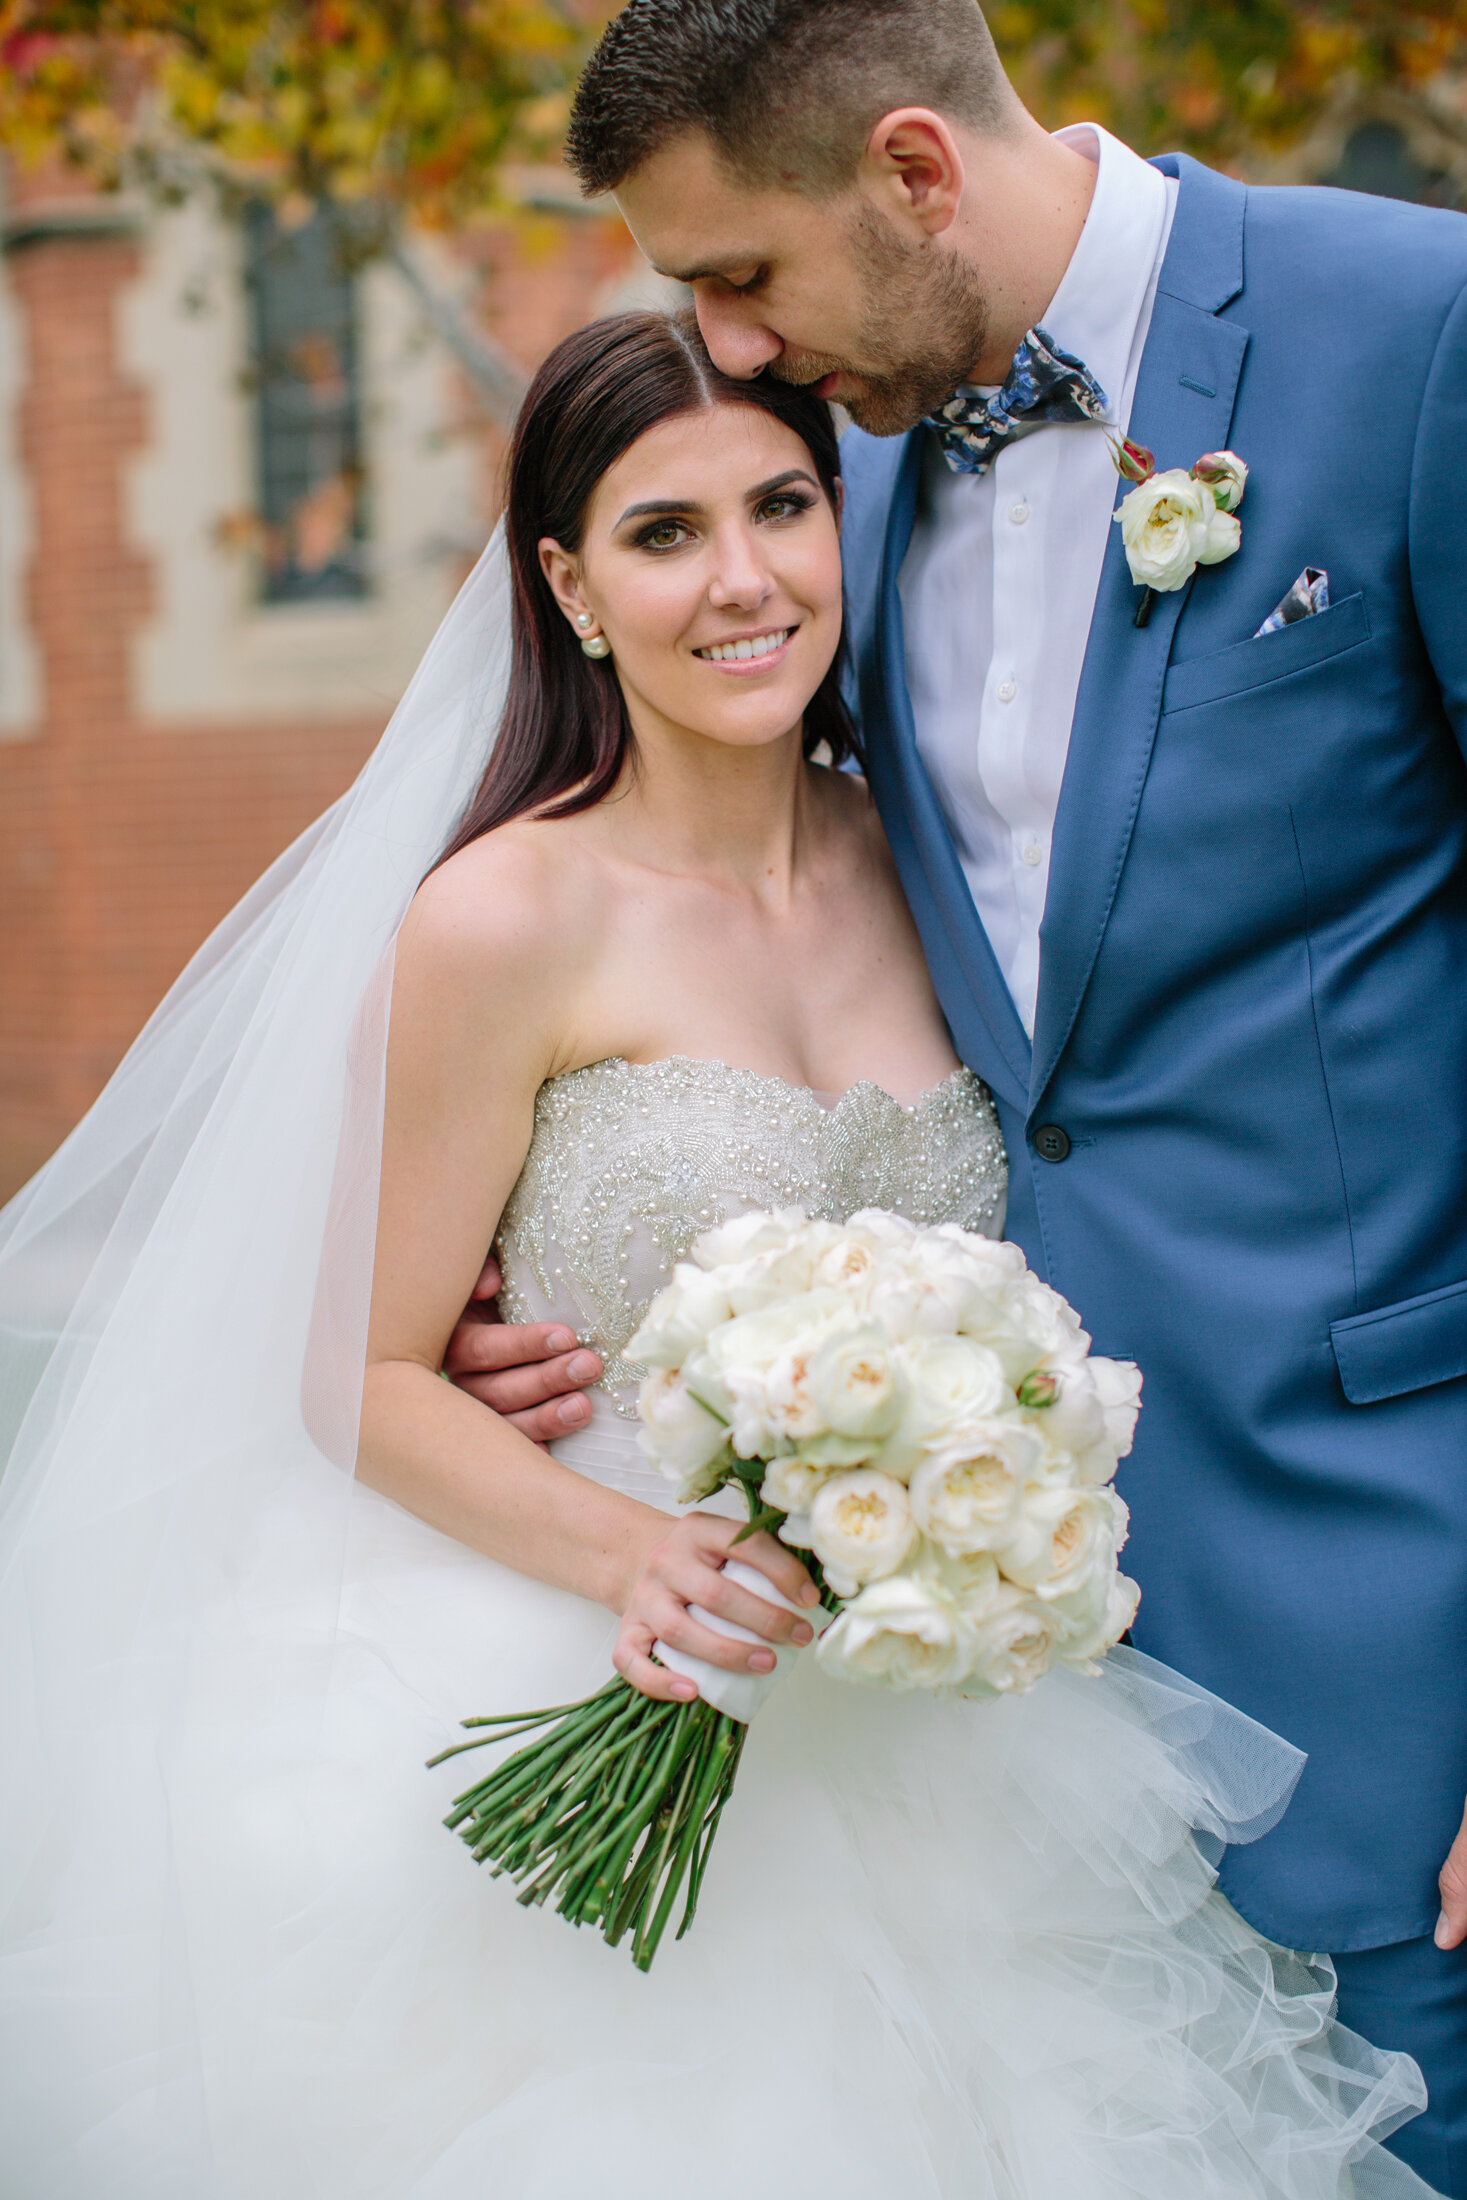 """JAZZE & TOM - """"Thank you for helping us create this magical day. We couldn't have asked for a better person to share our journey with."""